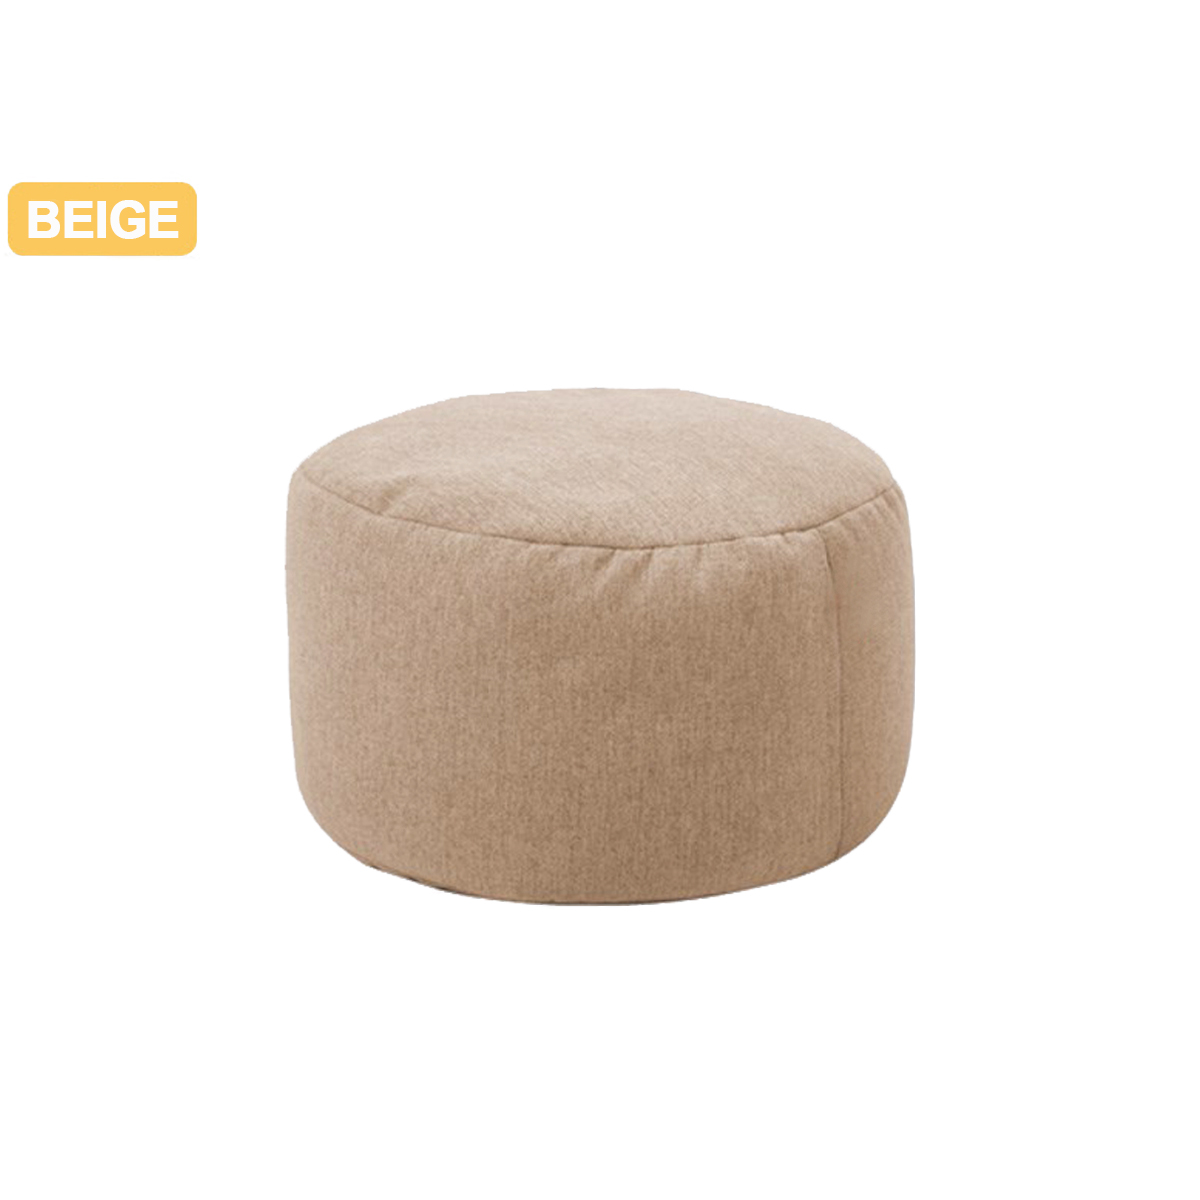 Sofa Rund Beige Small Round Bean Bag Beanbag Sofas Case Lounger Chair Lazy Sofa Cotton Linen Chair Cover Waterproof Gaming Bed Chair Seat Cushion